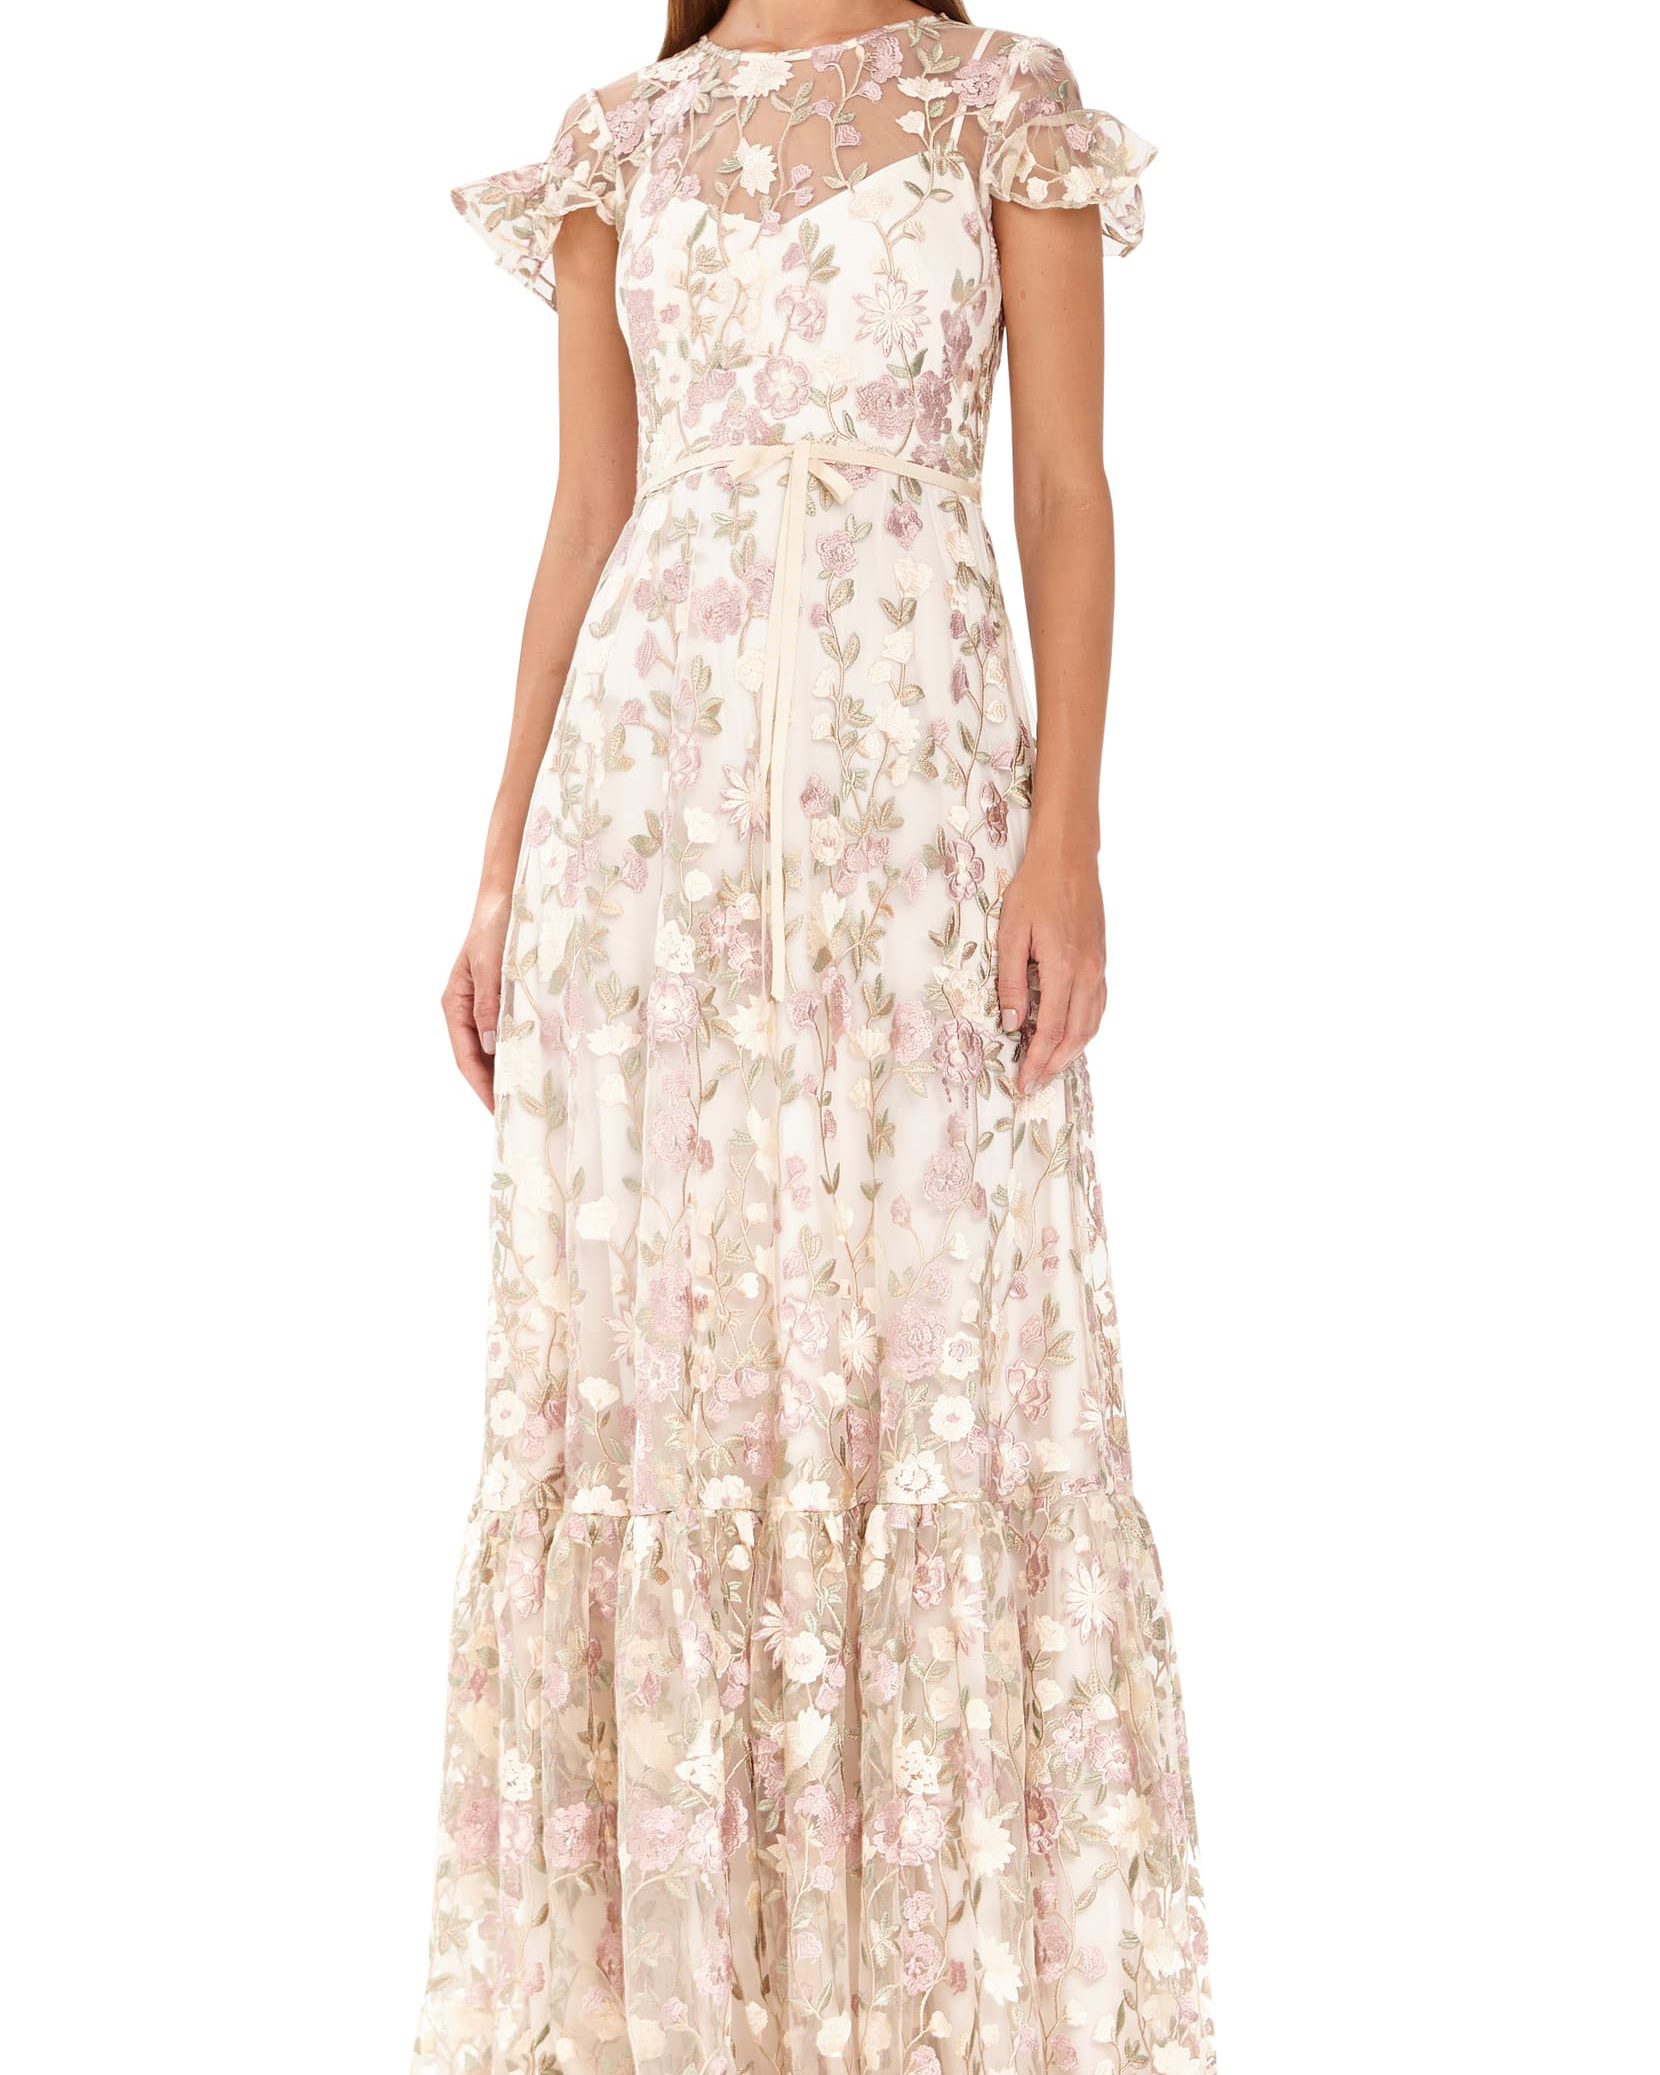 ML Monique Lhuillier Floral Embroidered Mesh Evening Dress